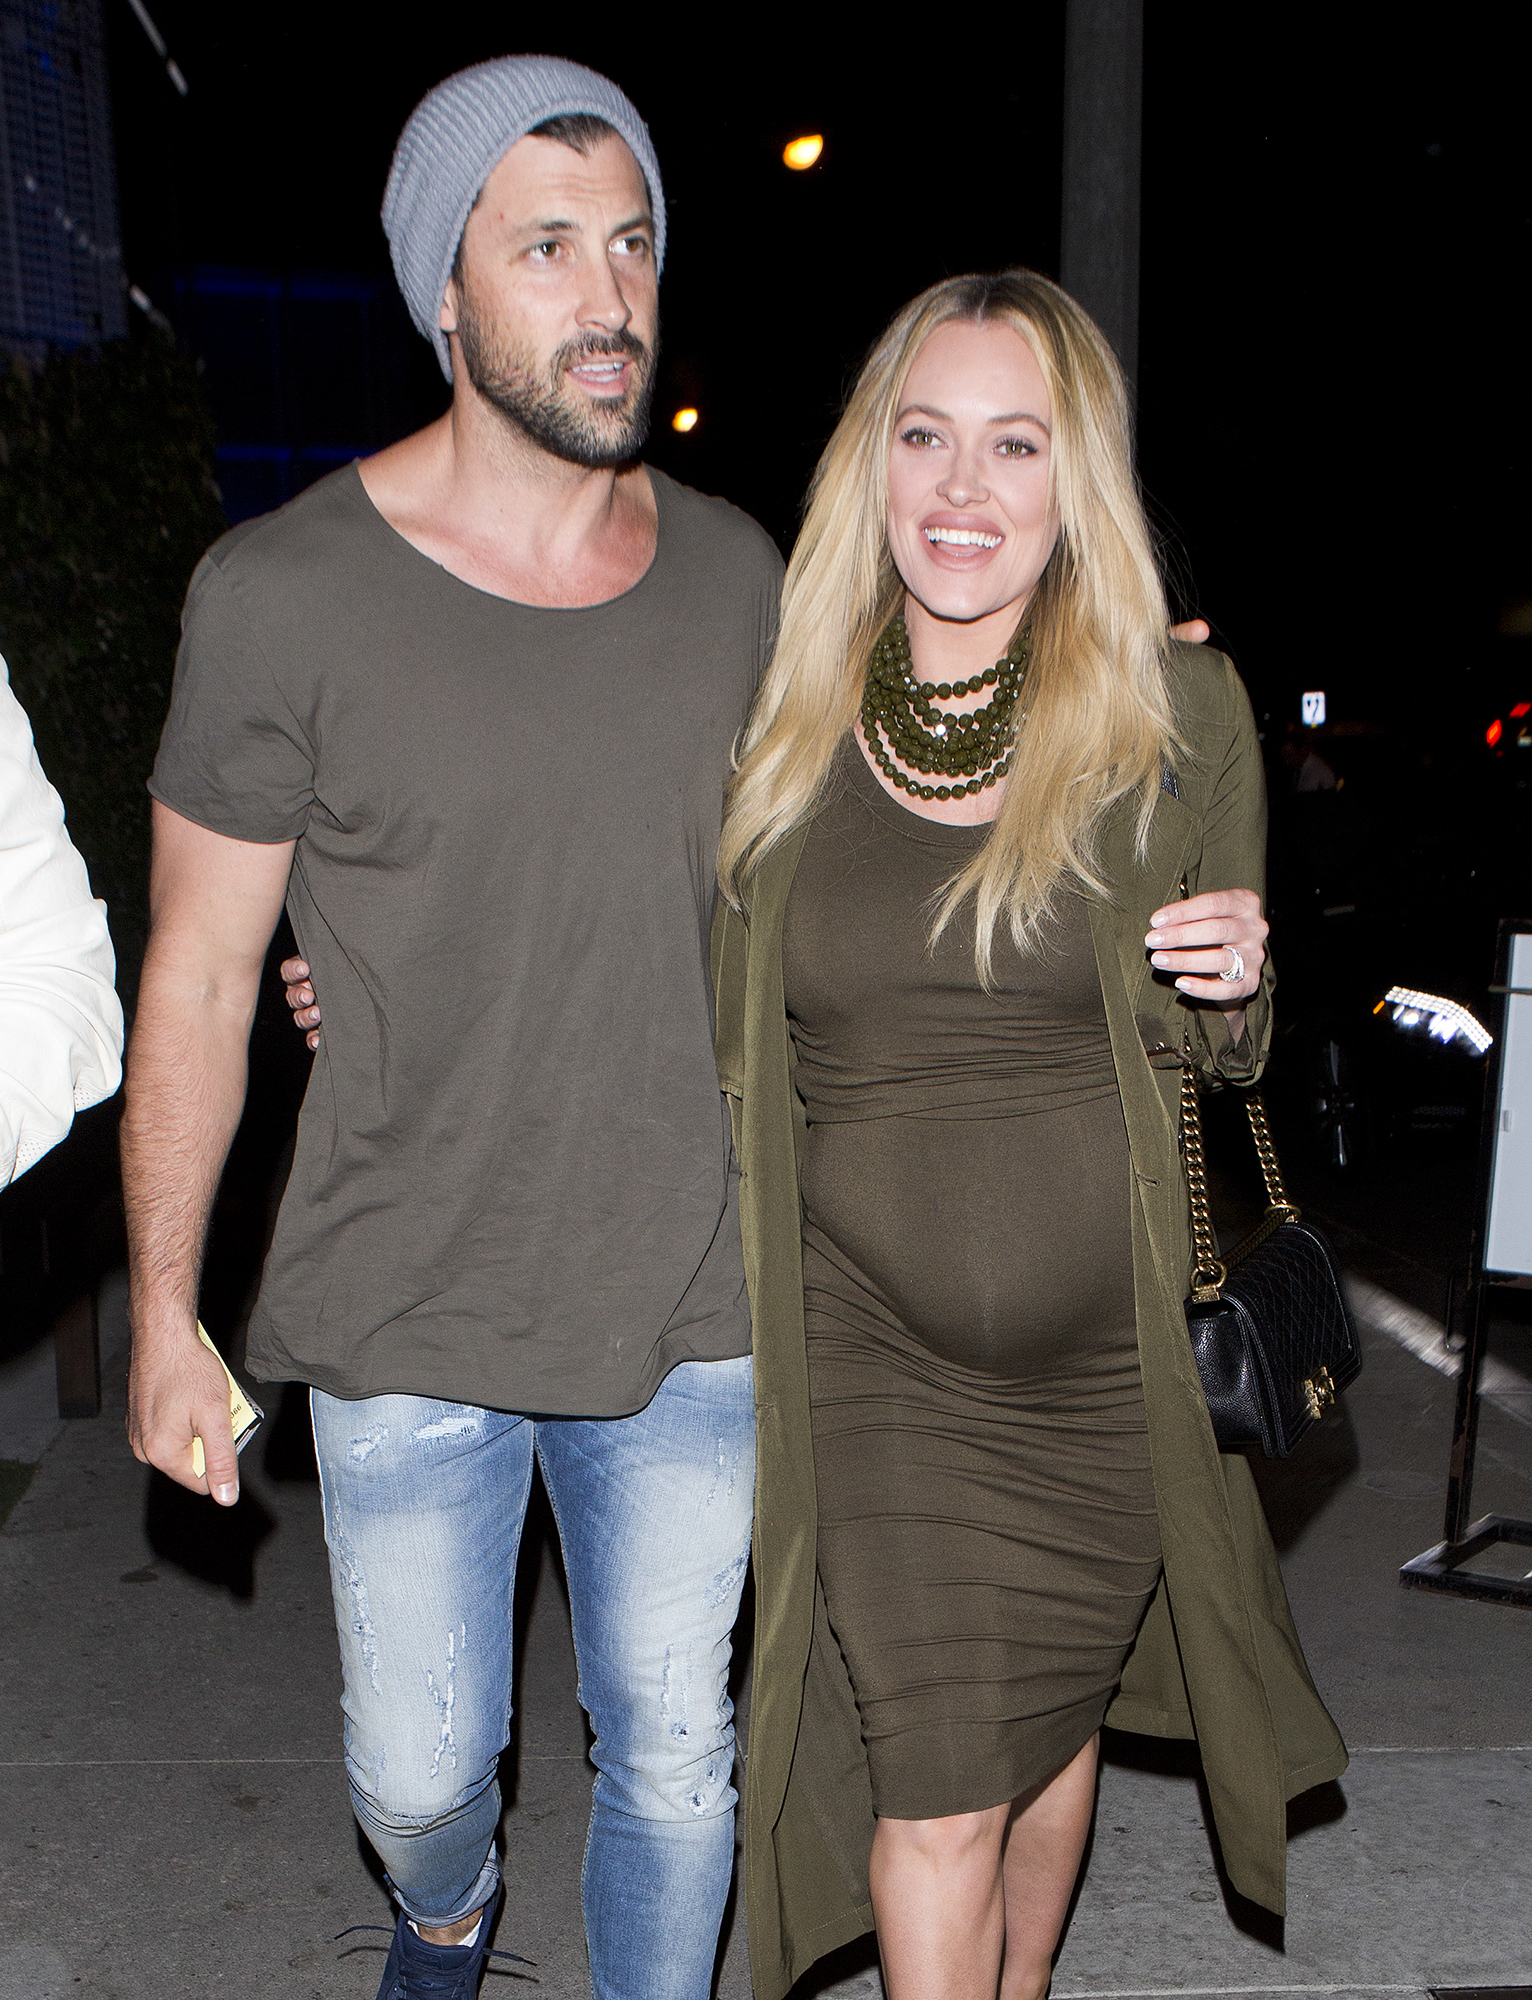 Peta Murgatroyd clearly appears to have tears in her eyes as her and partner Maksim Chmerkovskiy arrive for dinner at 'BOA' Restaurant in West Hollywood, CA